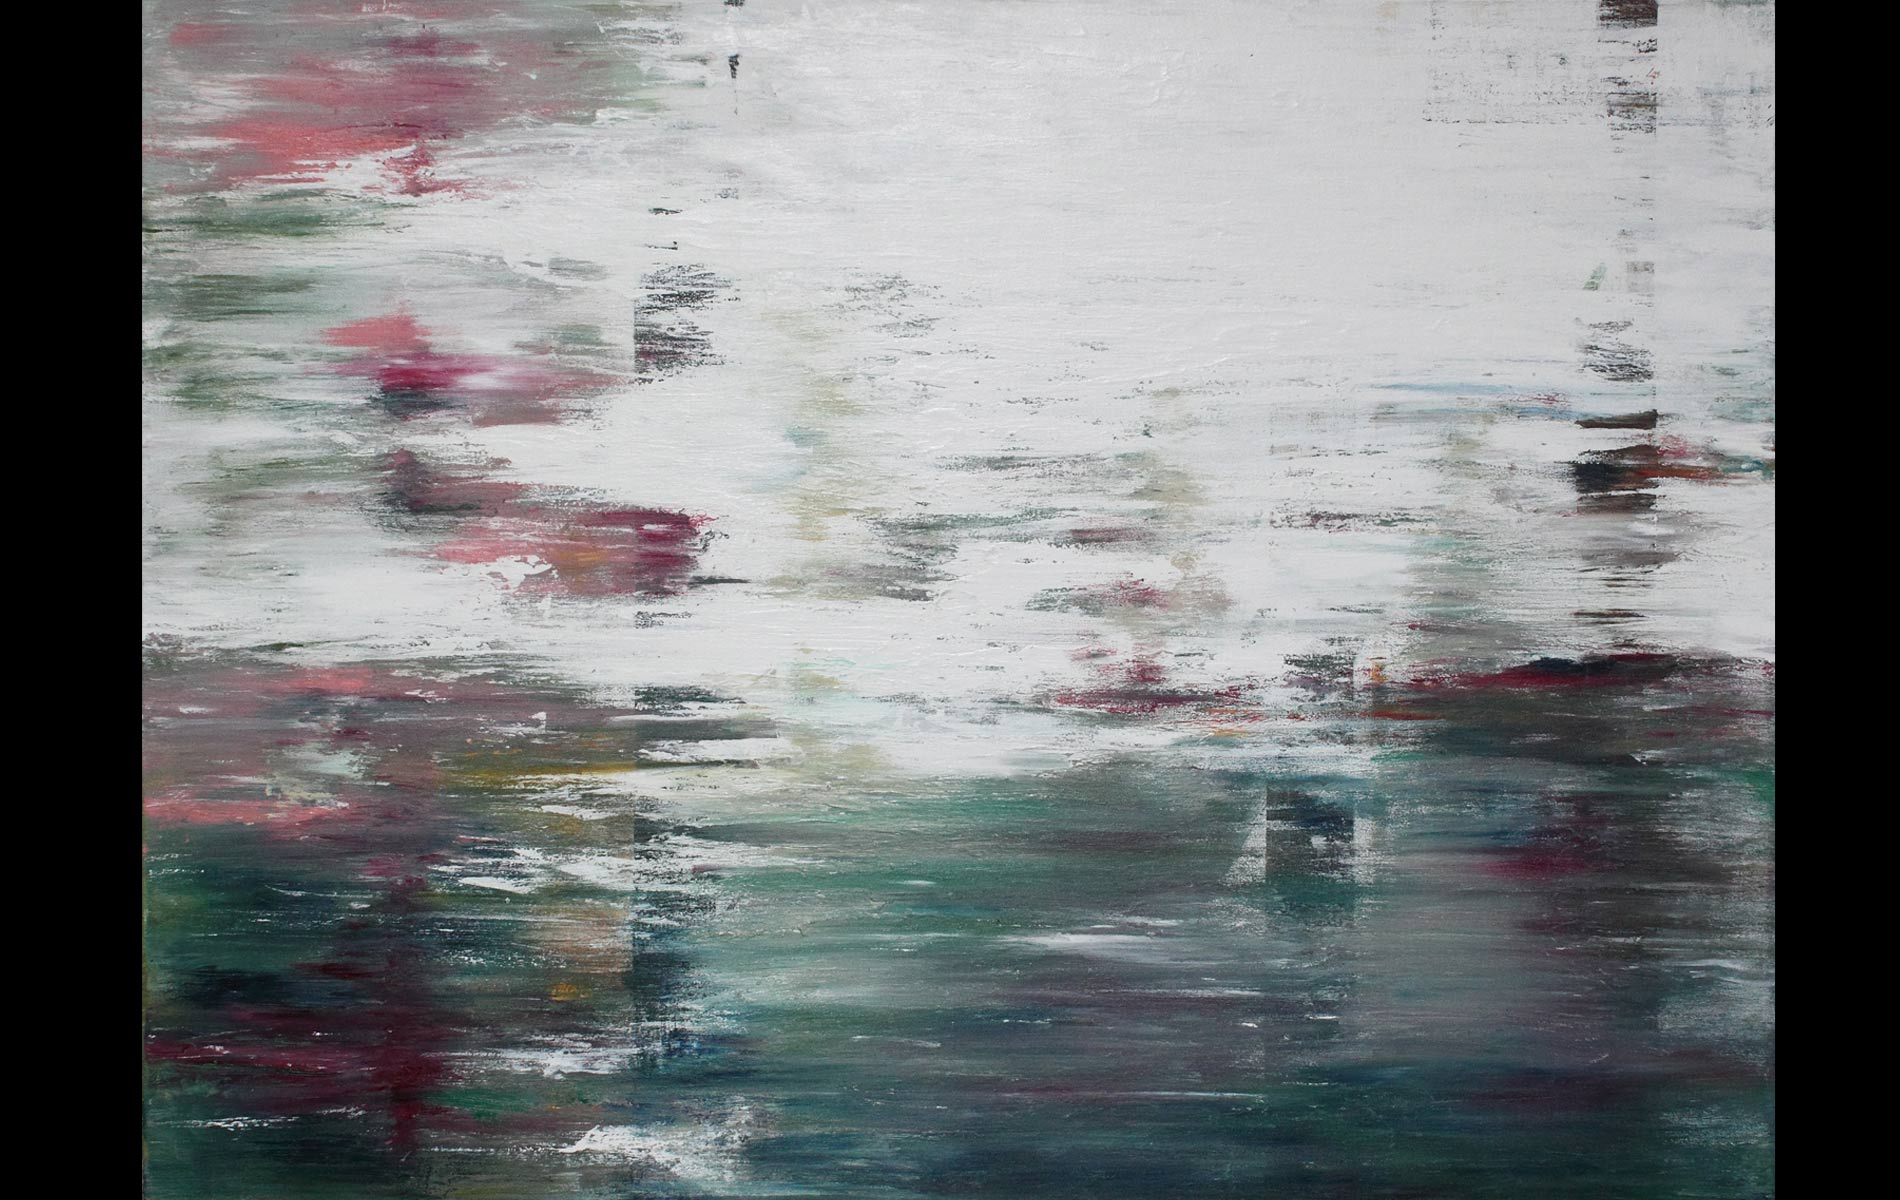 Marriage, 2011, Oil on Canvas, 36 x 48